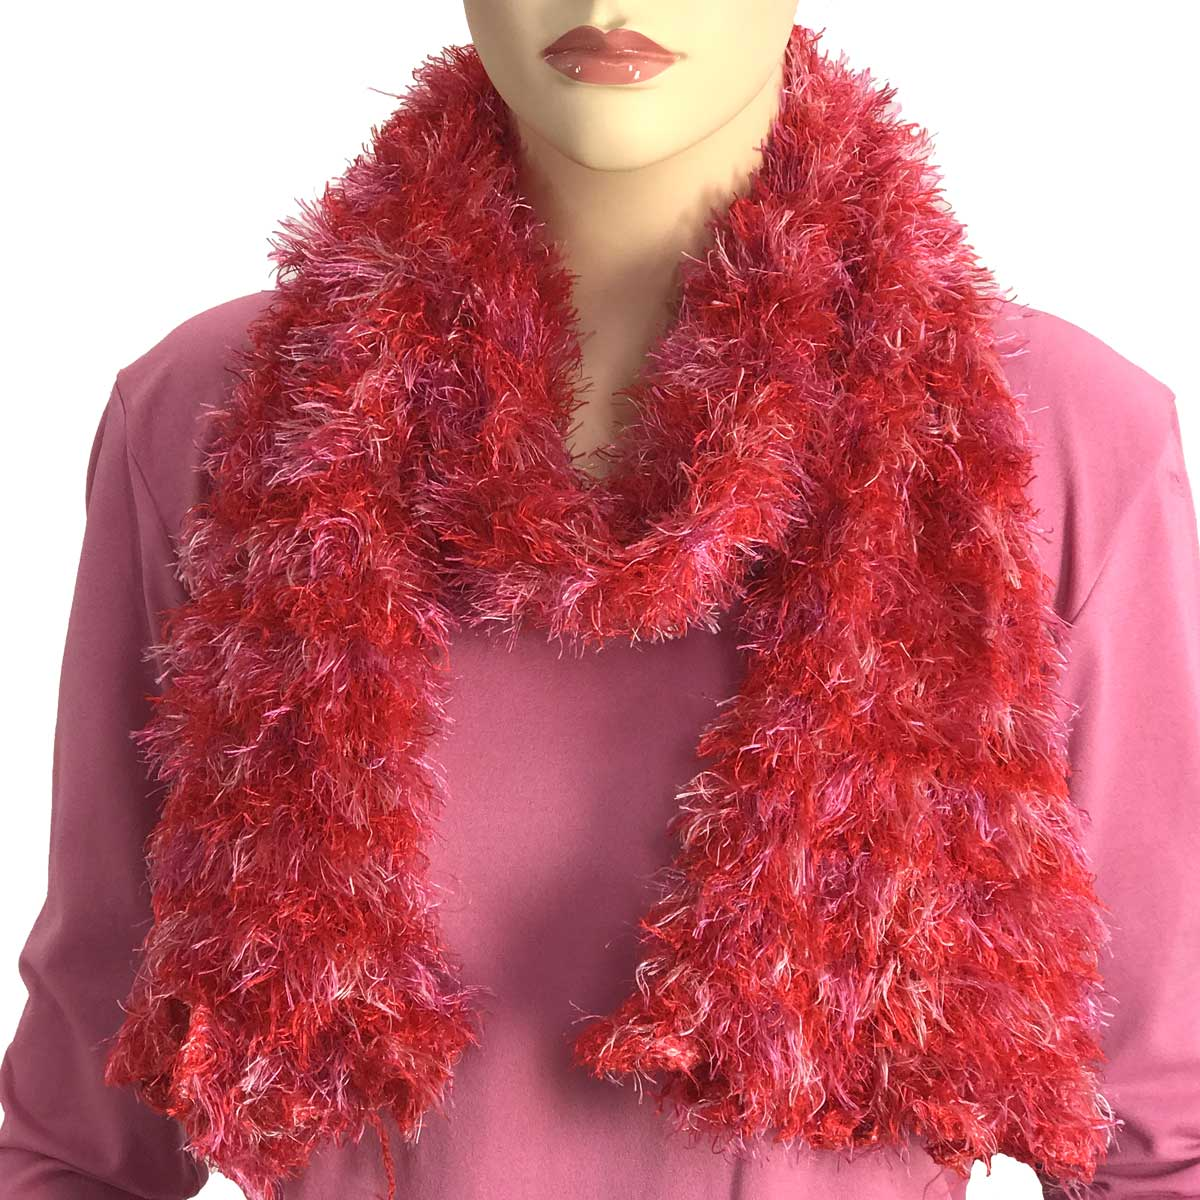 Wholesale Original Moa Boa Magic Scarves  Multi Red-Lavender Moa Boa Magic Scarf -